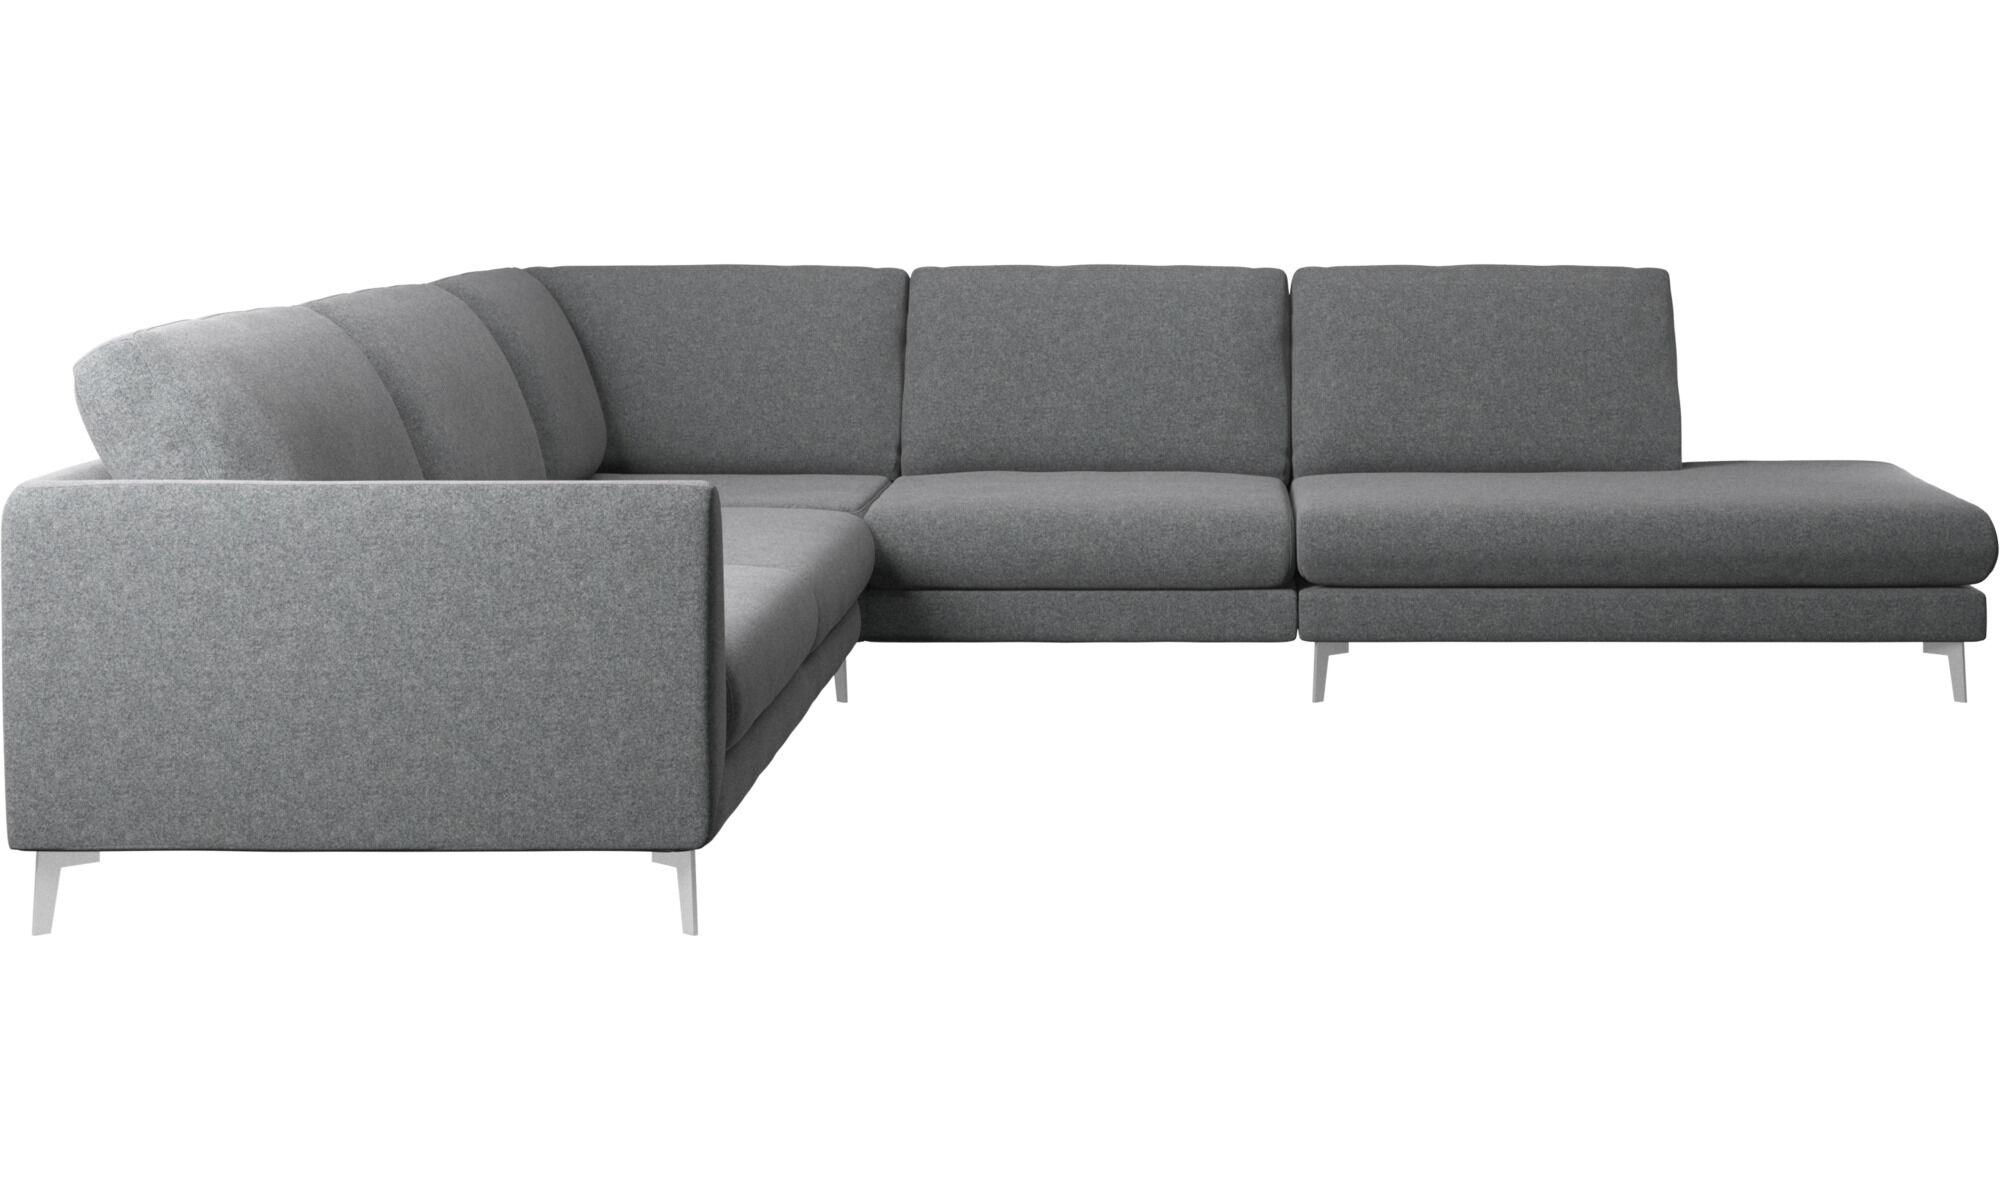 Corner sofas - Fargo corner sofa with lounging unit - BoConcept